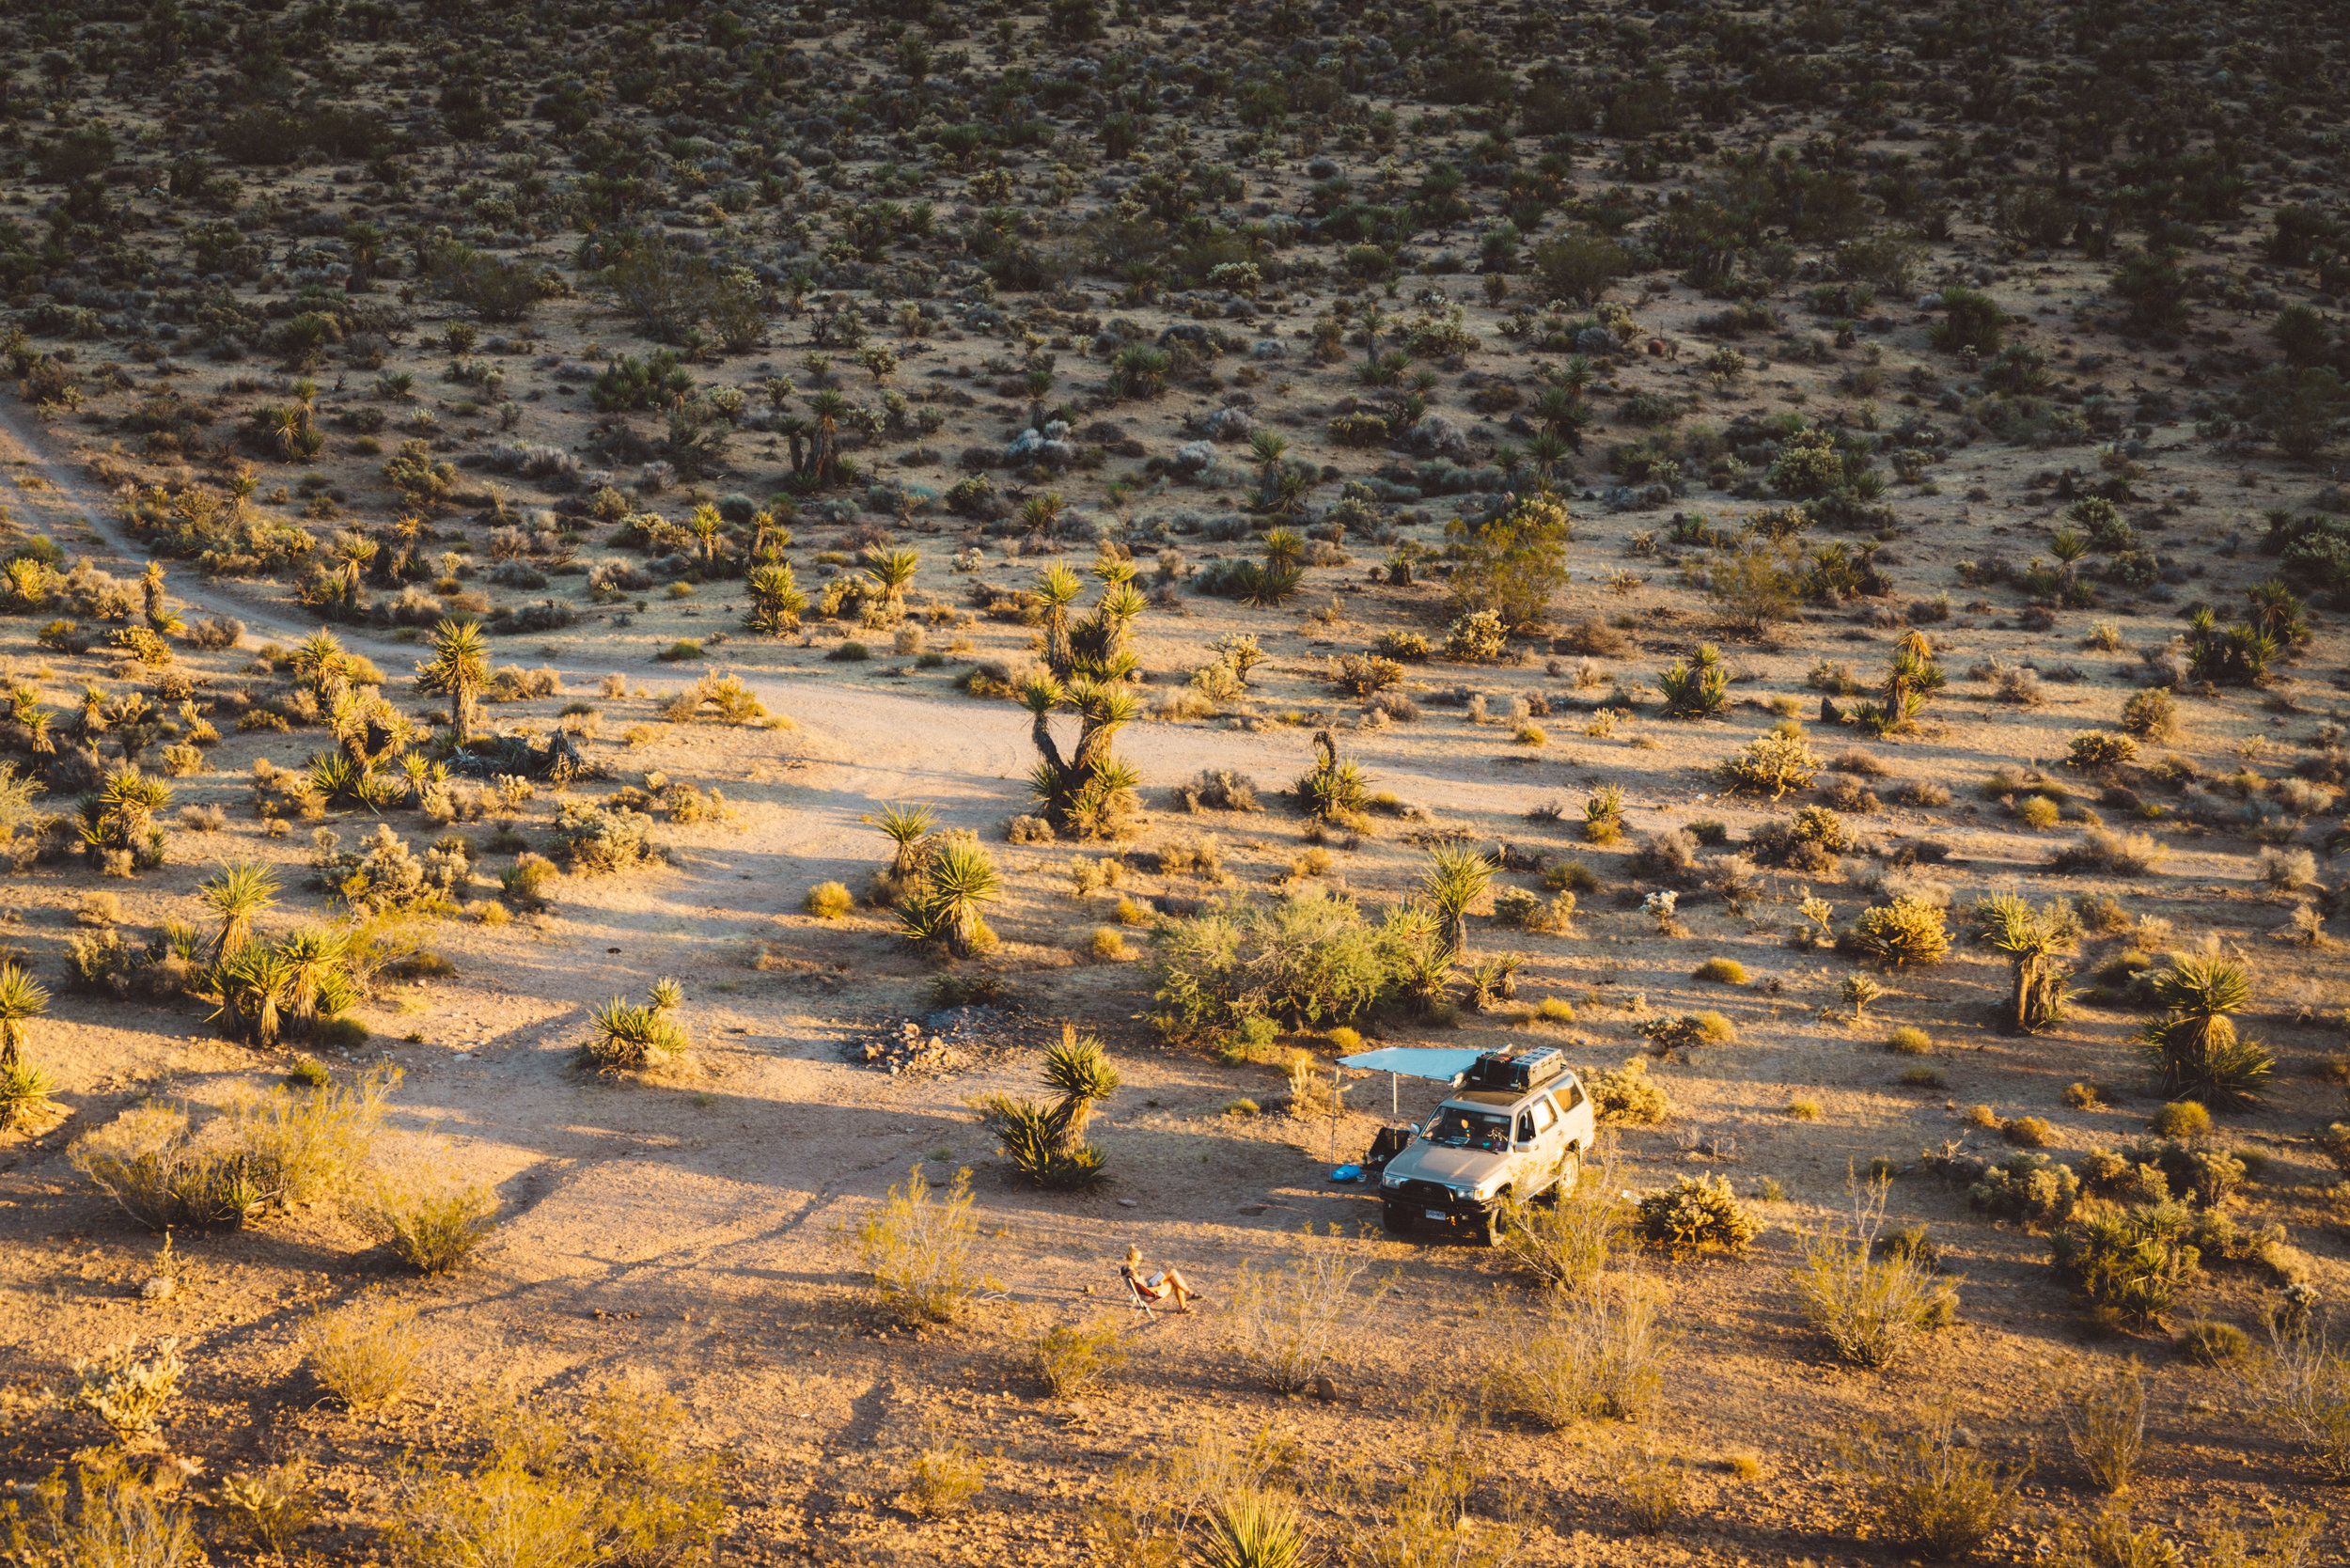 Our campsite in the Mojave.